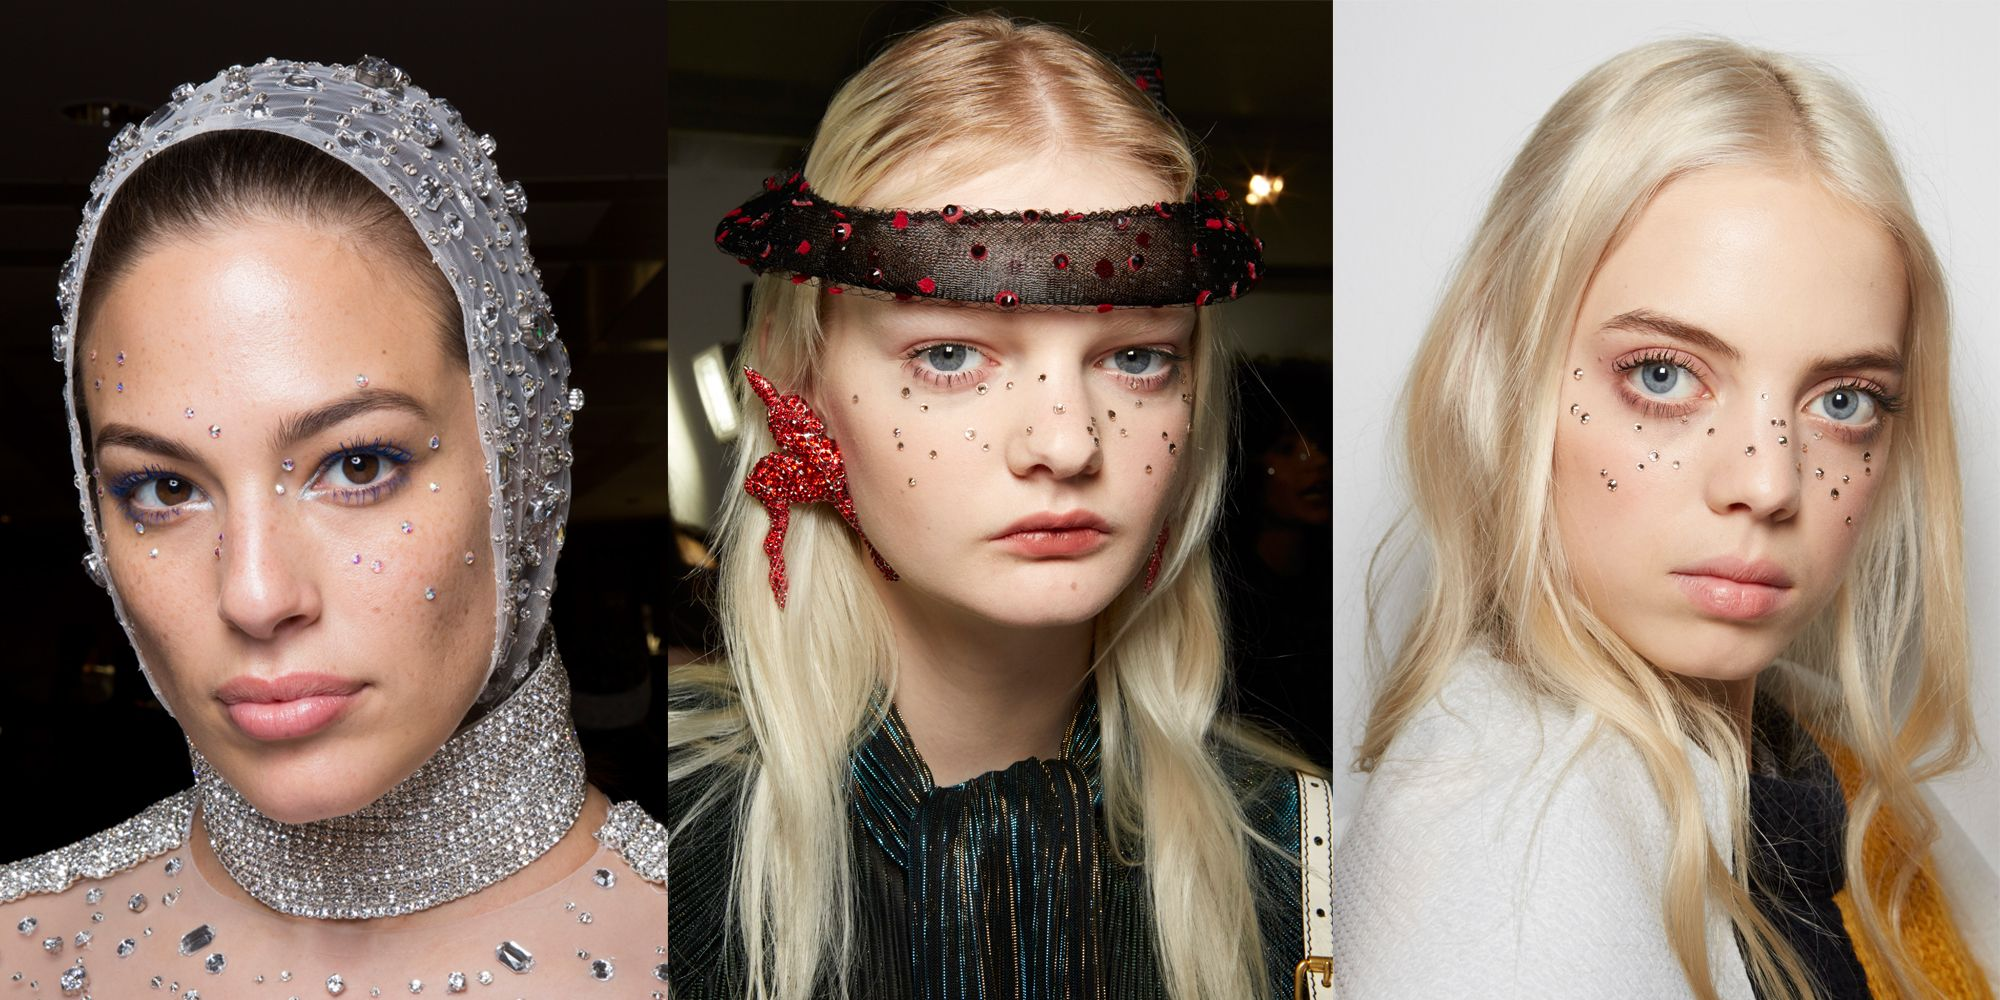 AW19 Diamante Freckle Beauty Trend